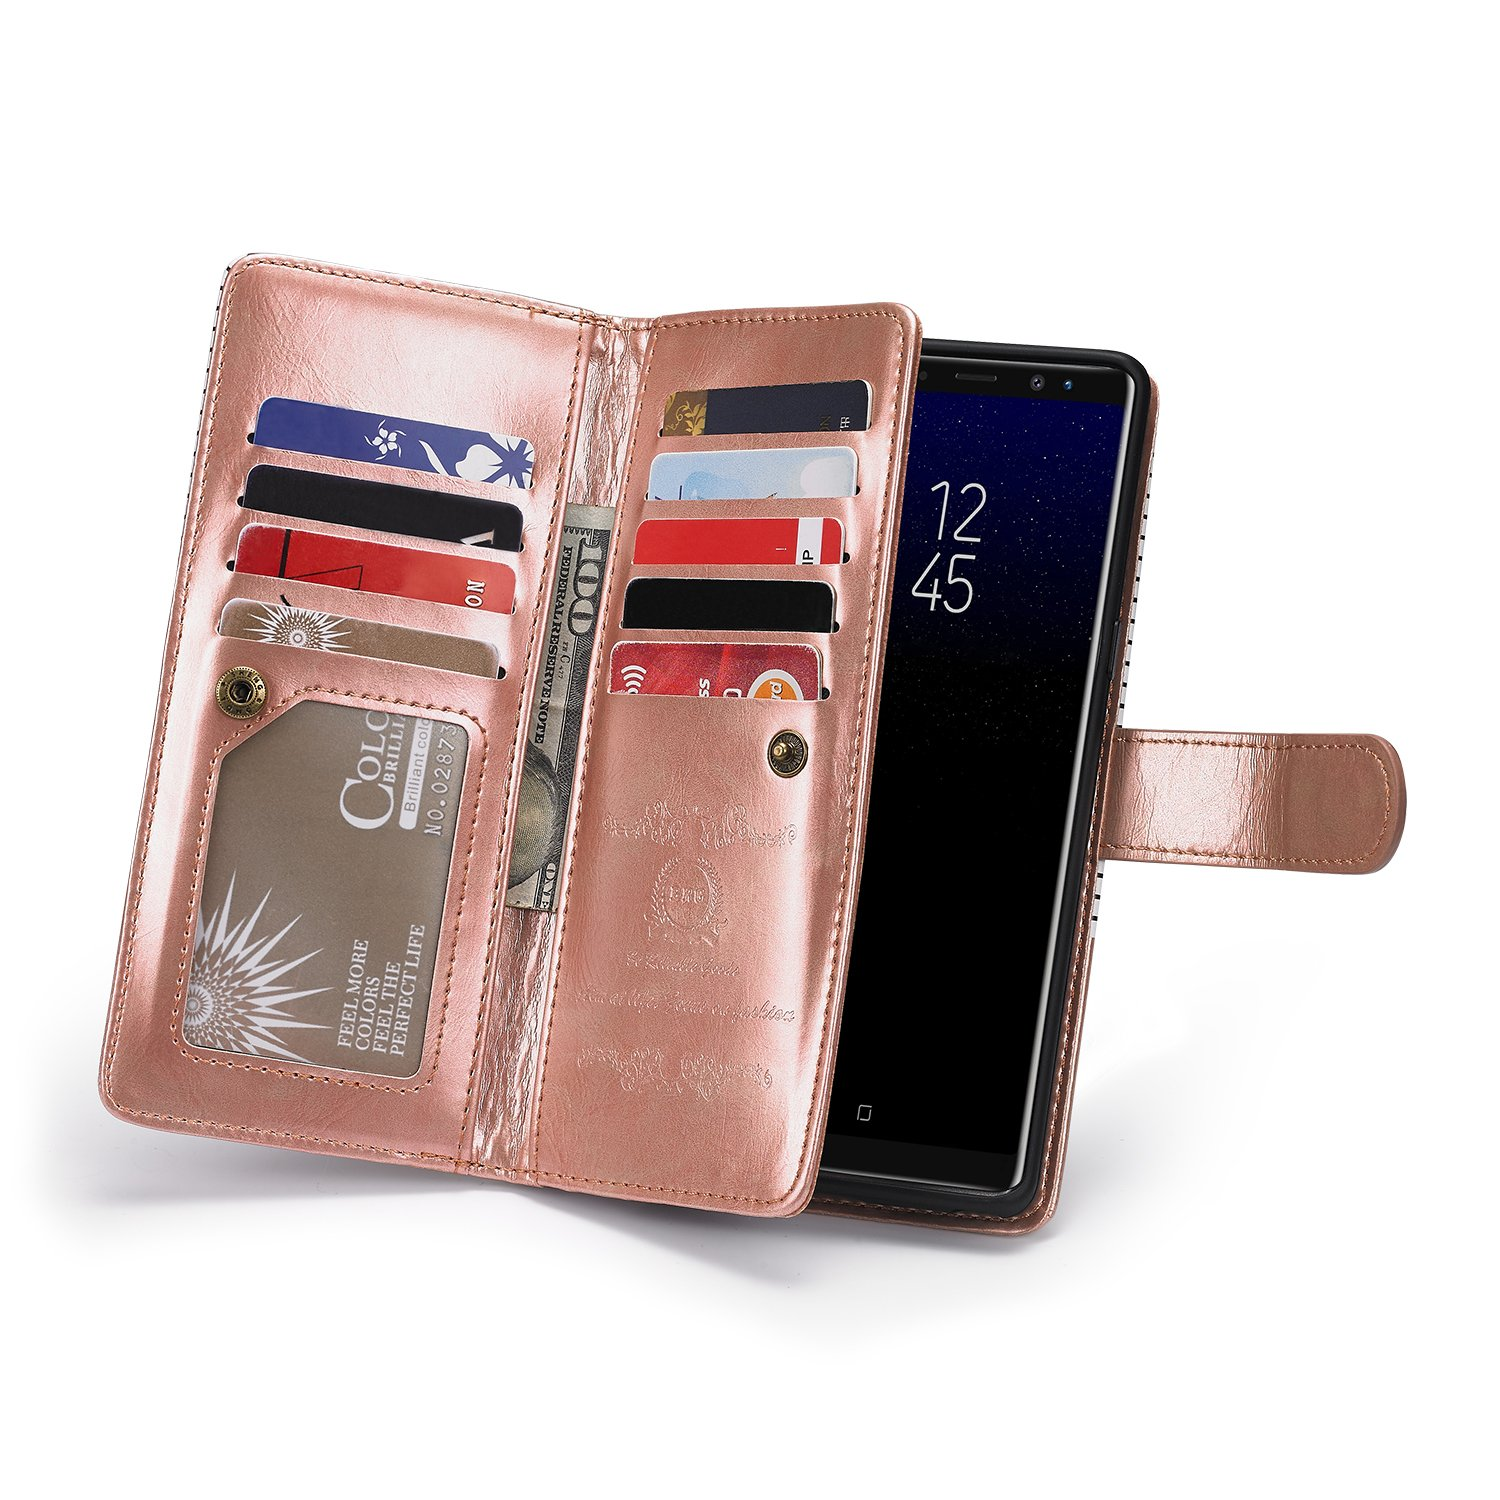 Galaxy S8 Plus Leather Wallet Case,Samsung Galaxy S8 Plus Case with 9 Card Slots,Gostyle Stripe Pattern Magnetic Detachable and Removable PU Flip Cover with Money Clip and Hand Strap(Rose Gold&White)